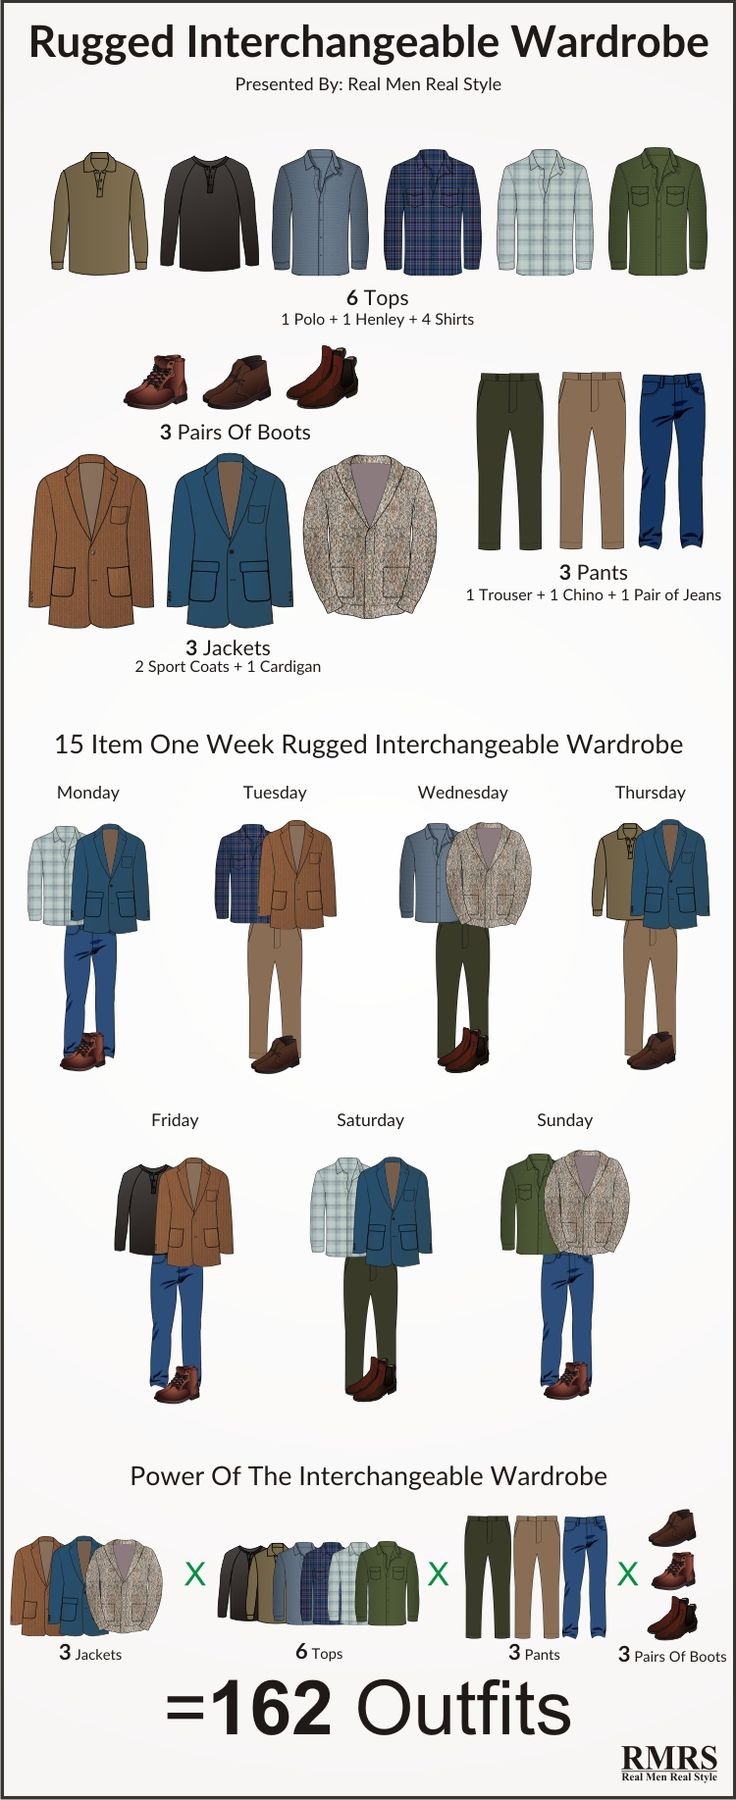 162 Rugged Outfits From 15 Casual Pieces | Interchangeable Wardrobe Infographic. #menstyle #casual